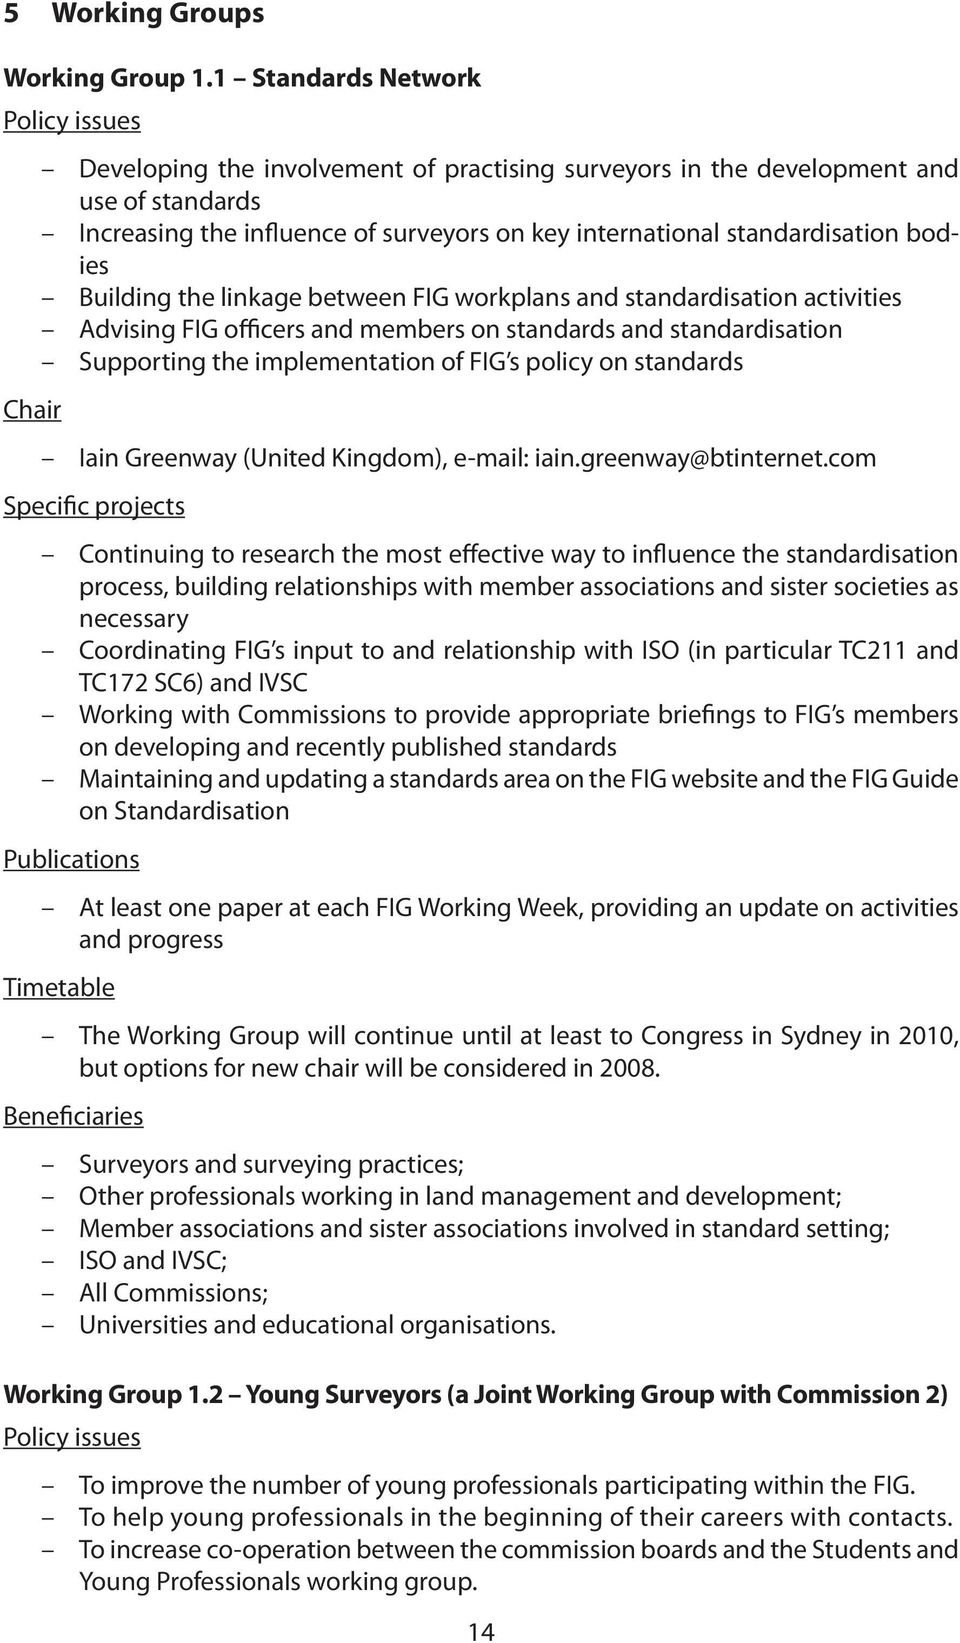 standardisation bodies Building the linkage between FIG workplans and standardisation activities Advising FIG officers and members on standards and standardisation Supporting the implementation of